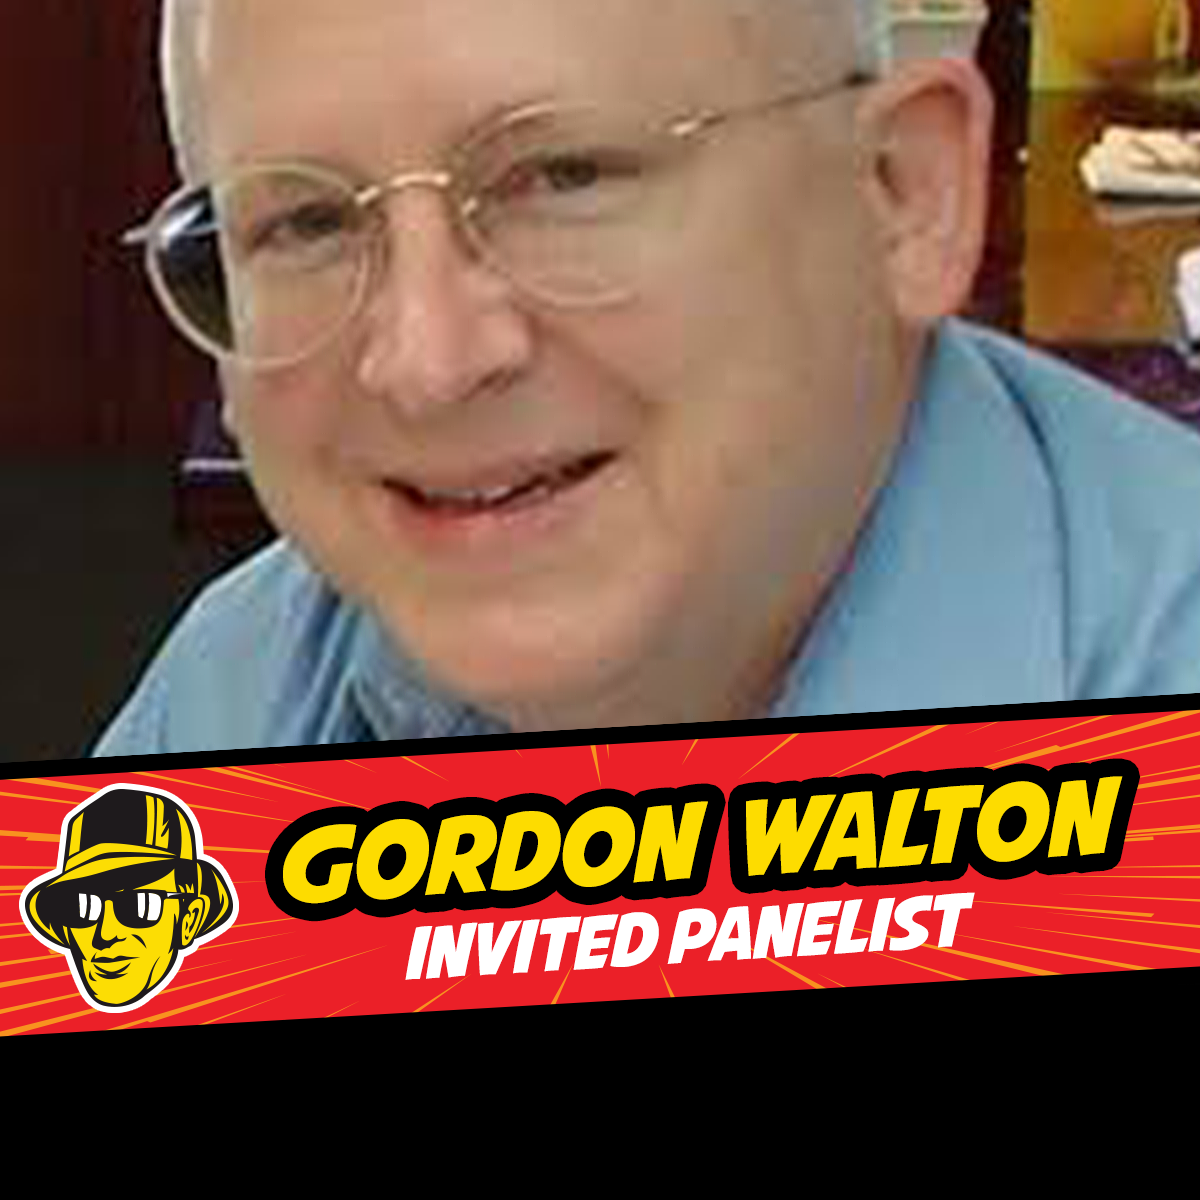 Gordon Walton San Antonio Comic Con Panelist Celebrity Fan Fest